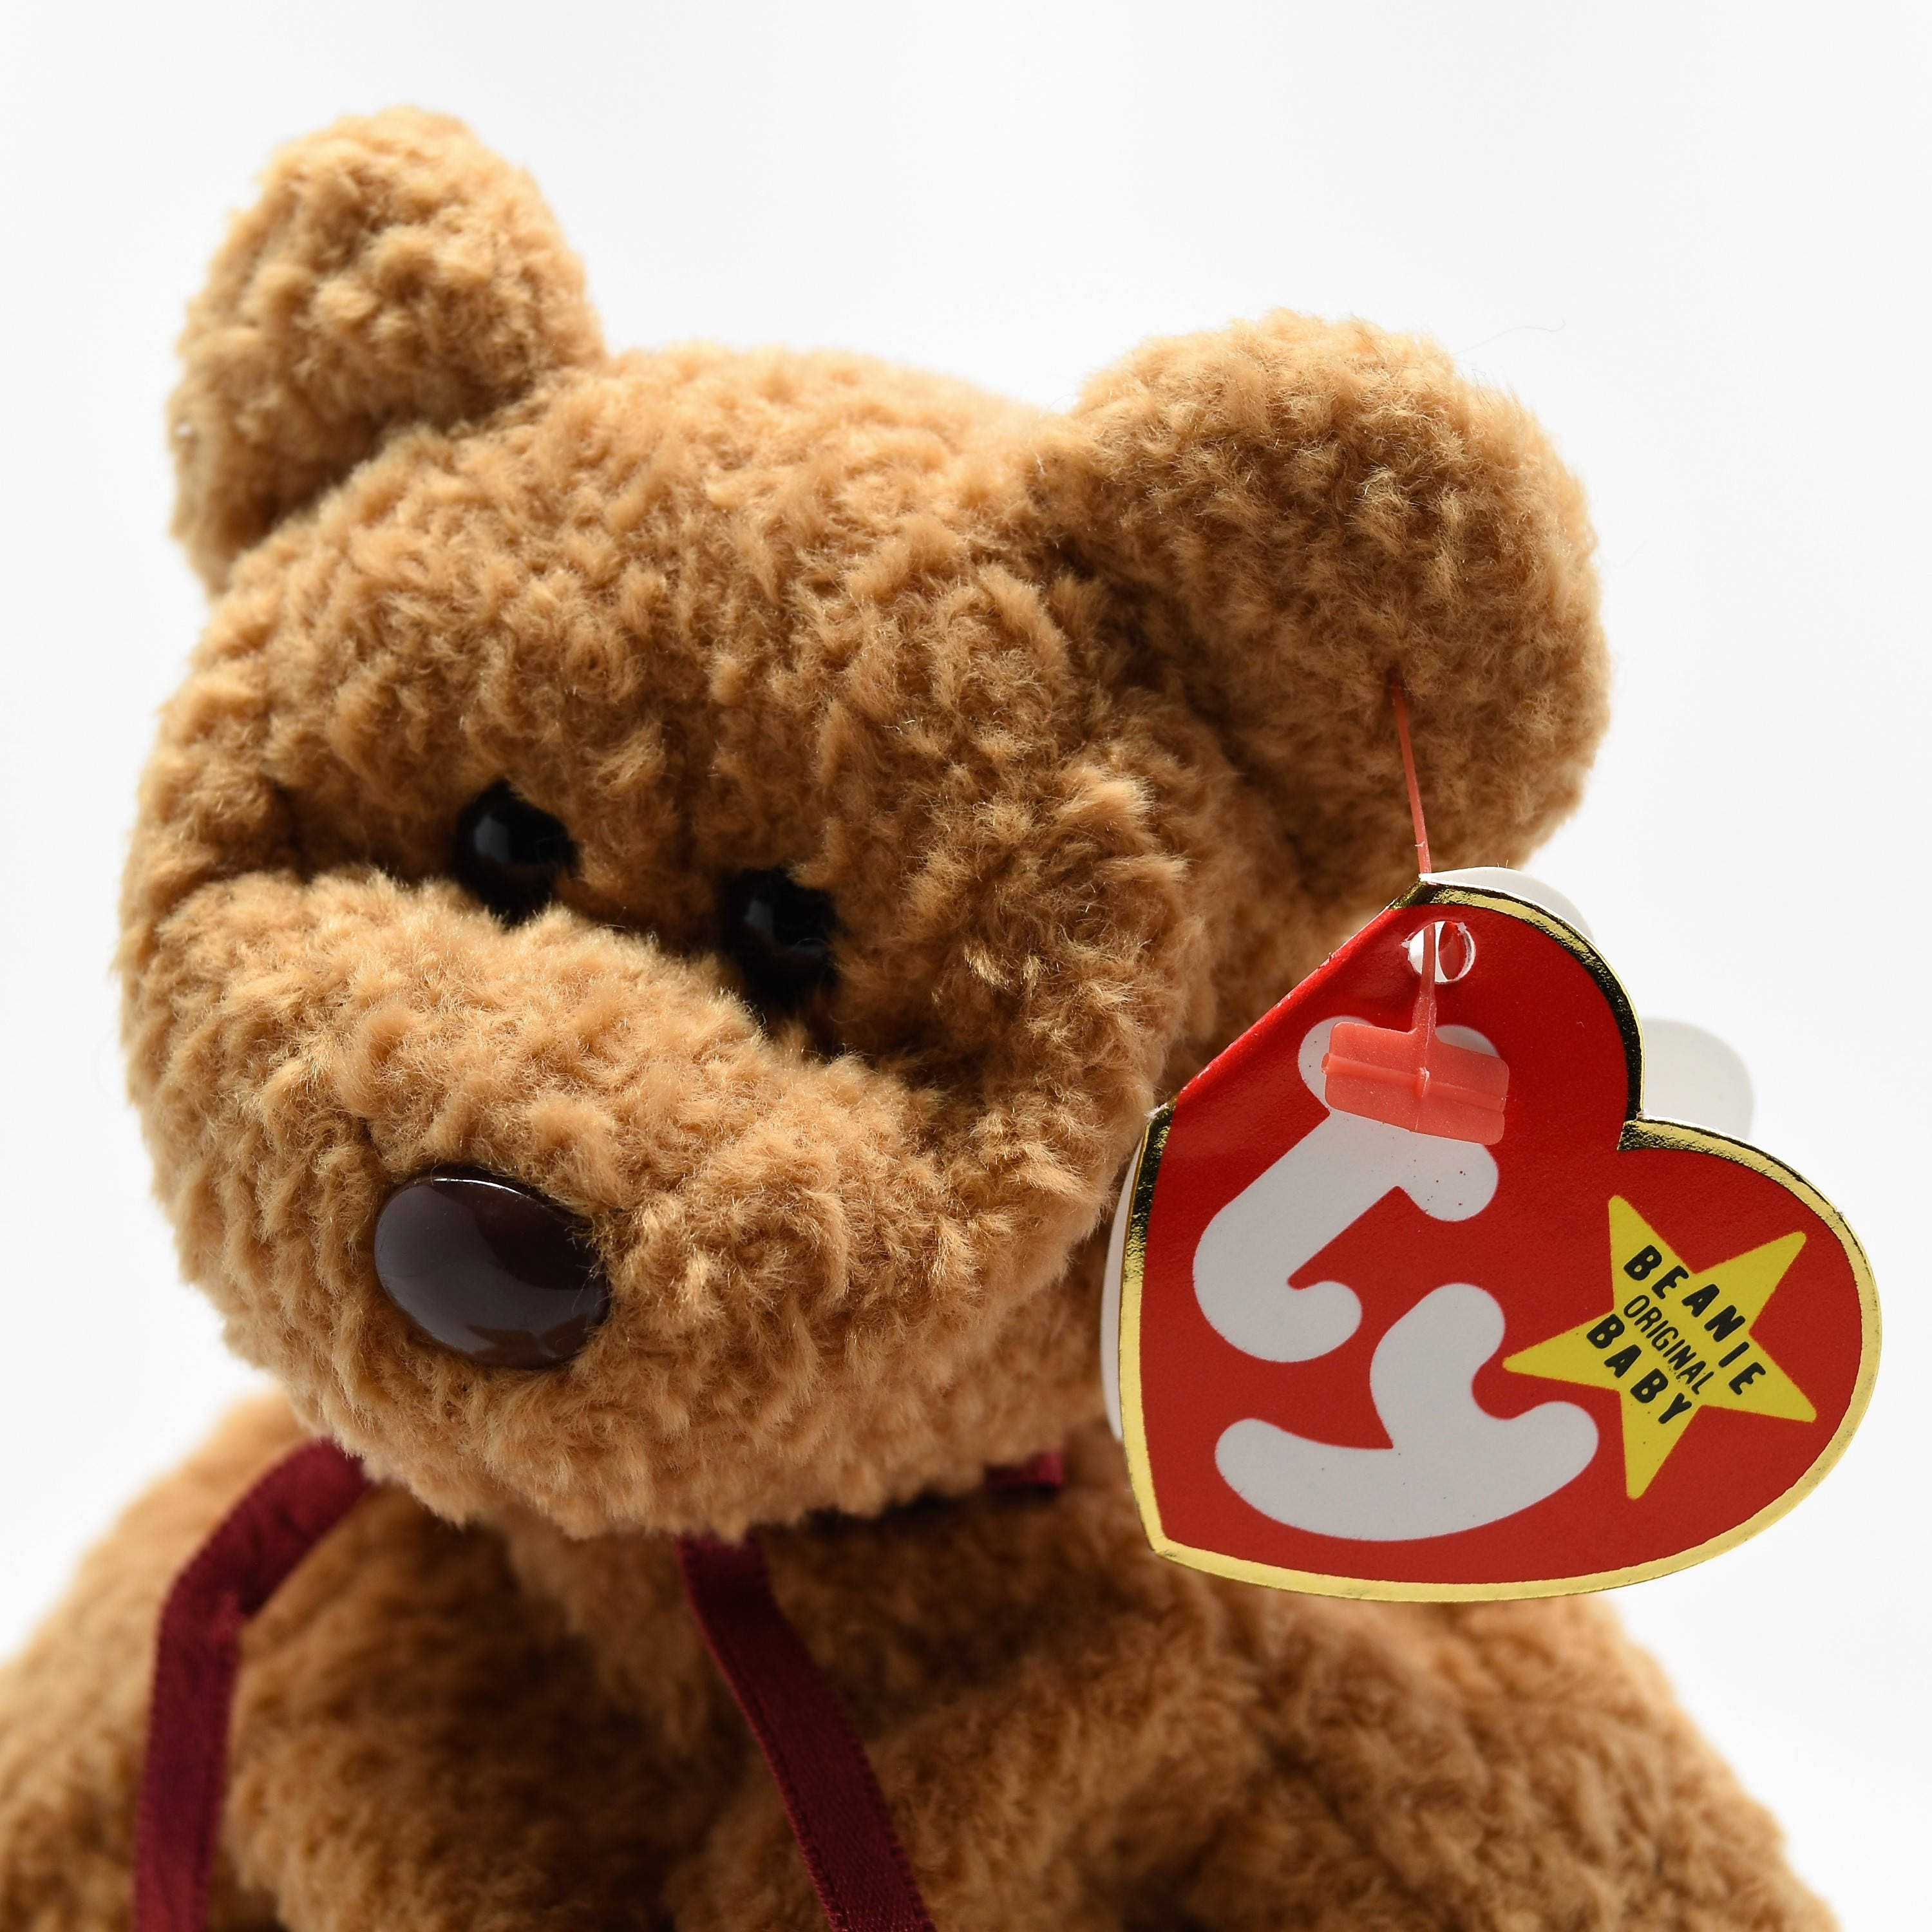 TY RETIRED CURLY Beanie Baby. gallery photo gallery photo ... 563e34fce46